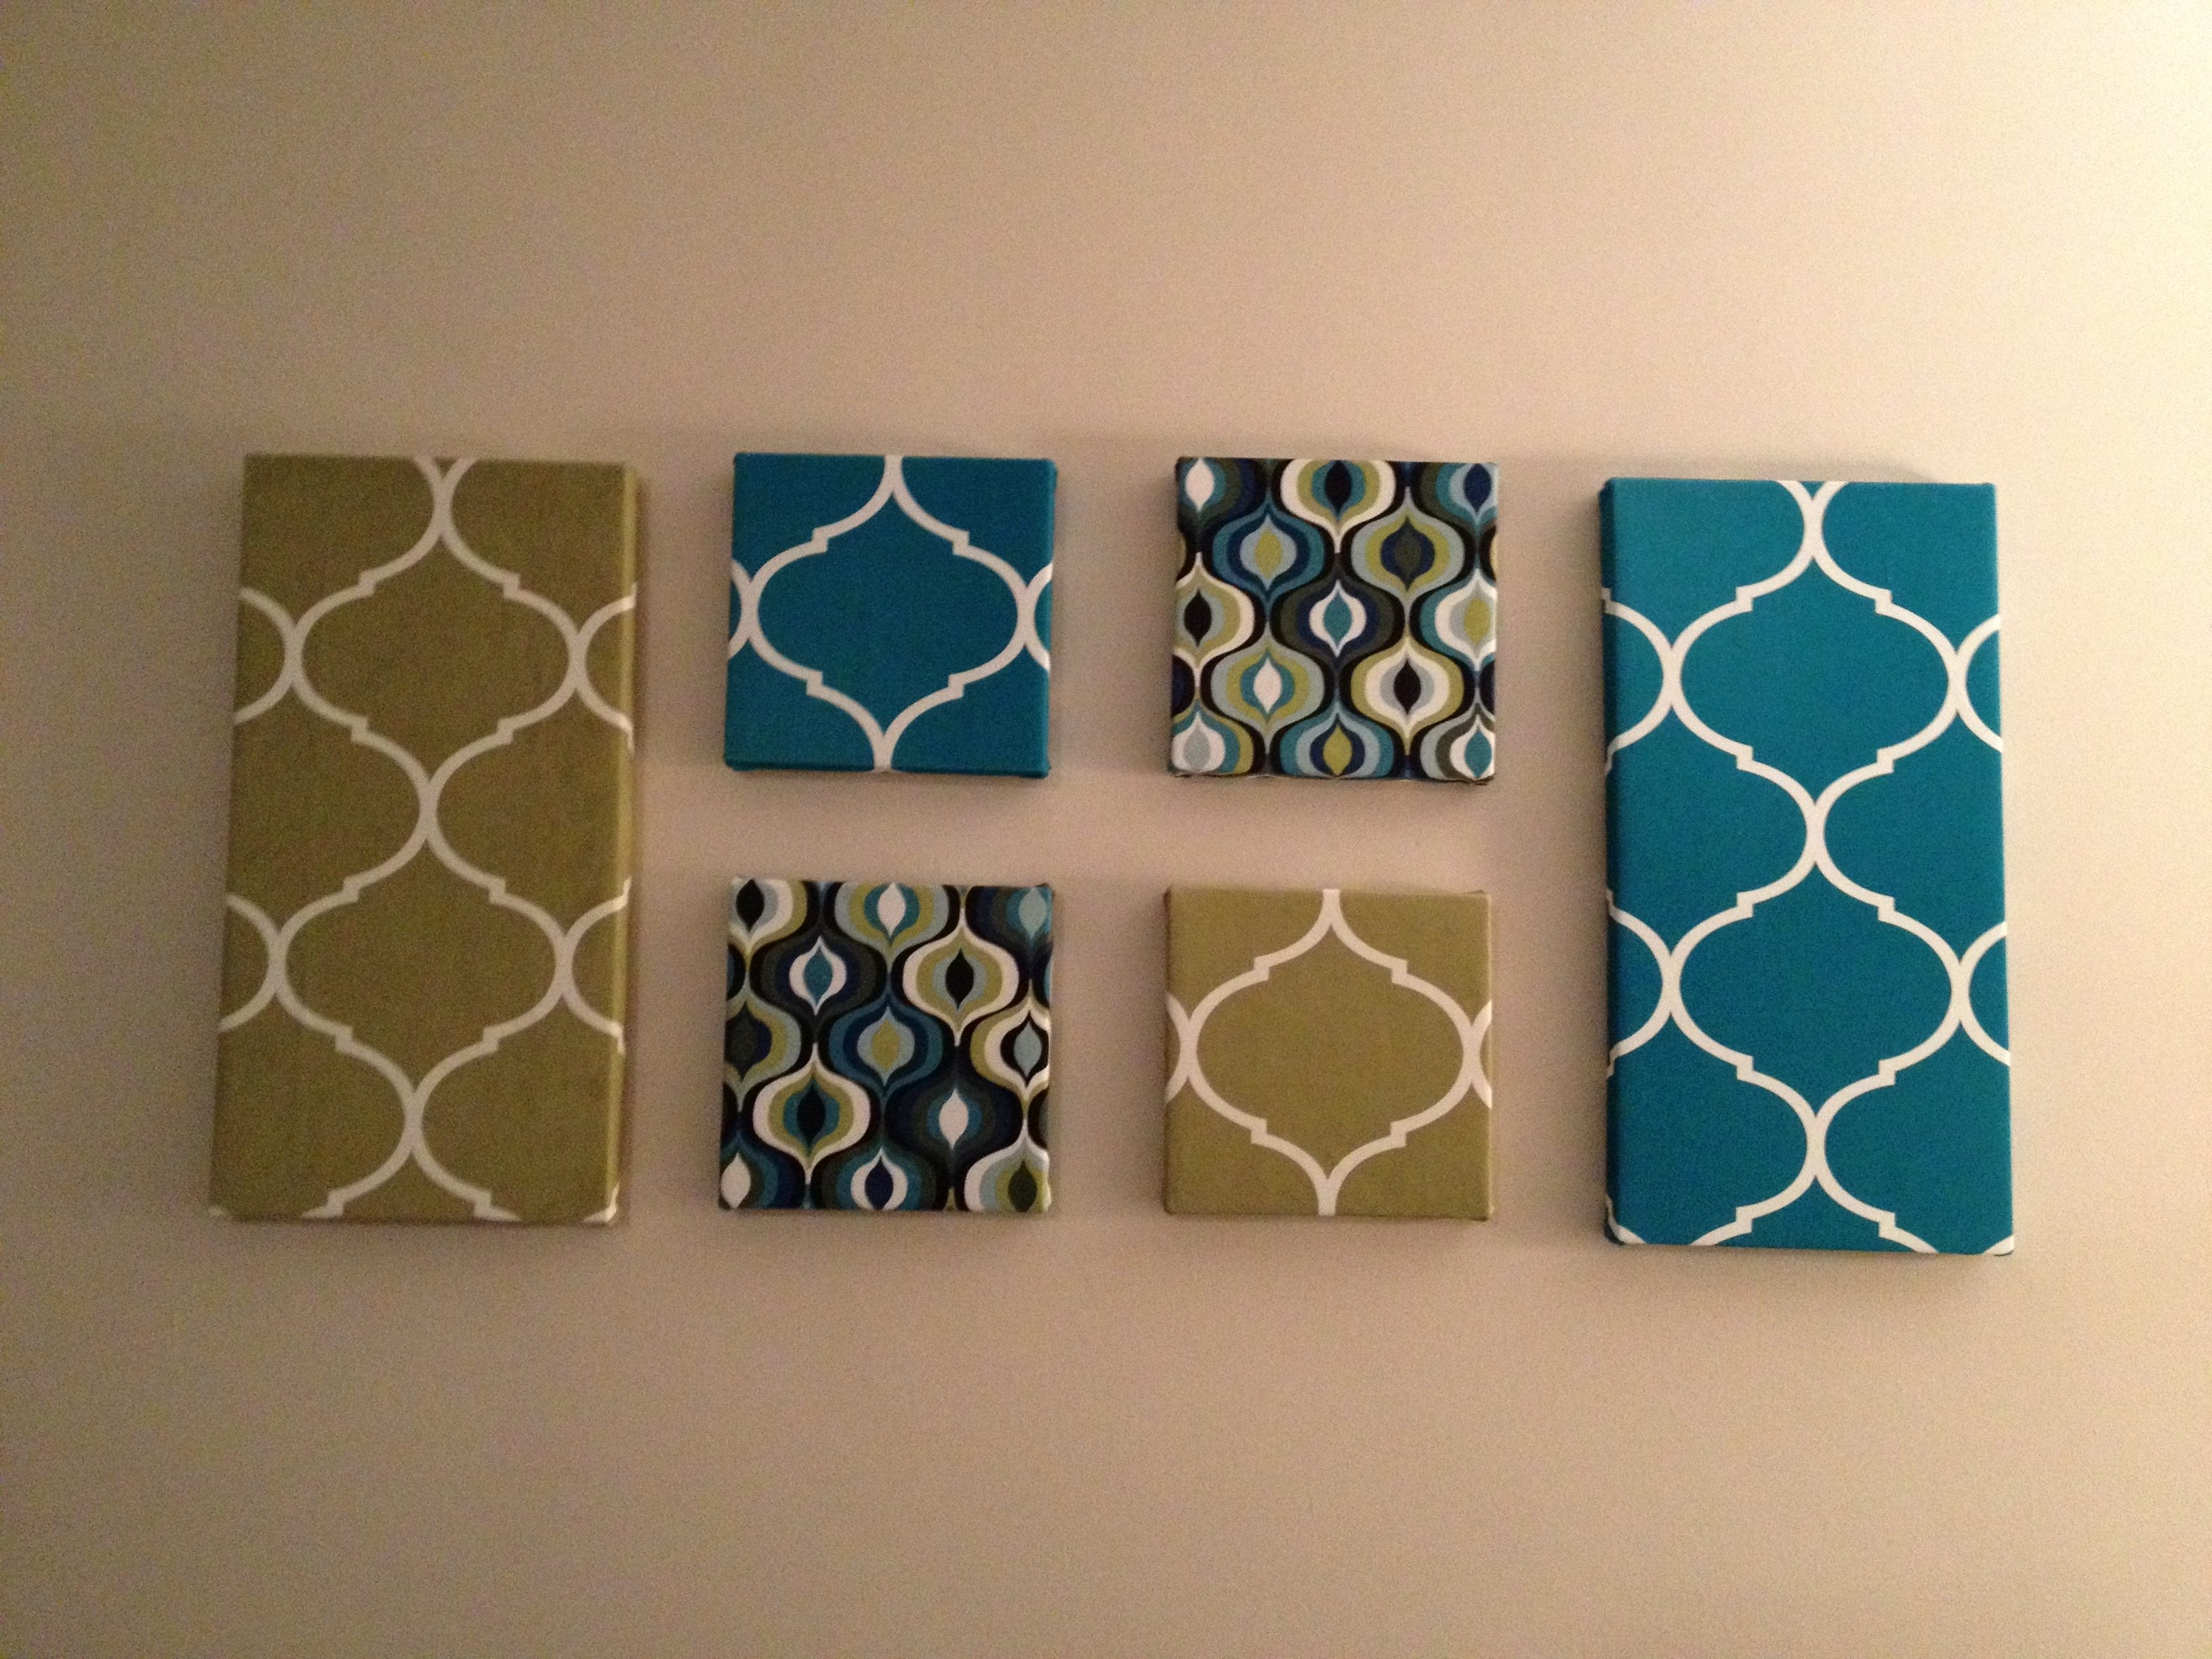 Wall Art: Fabric Covered Canvases | Candy And Her Cupcakes Pertaining To 2018 Canvas Wall Art With Fabric (Gallery 2 of 15)